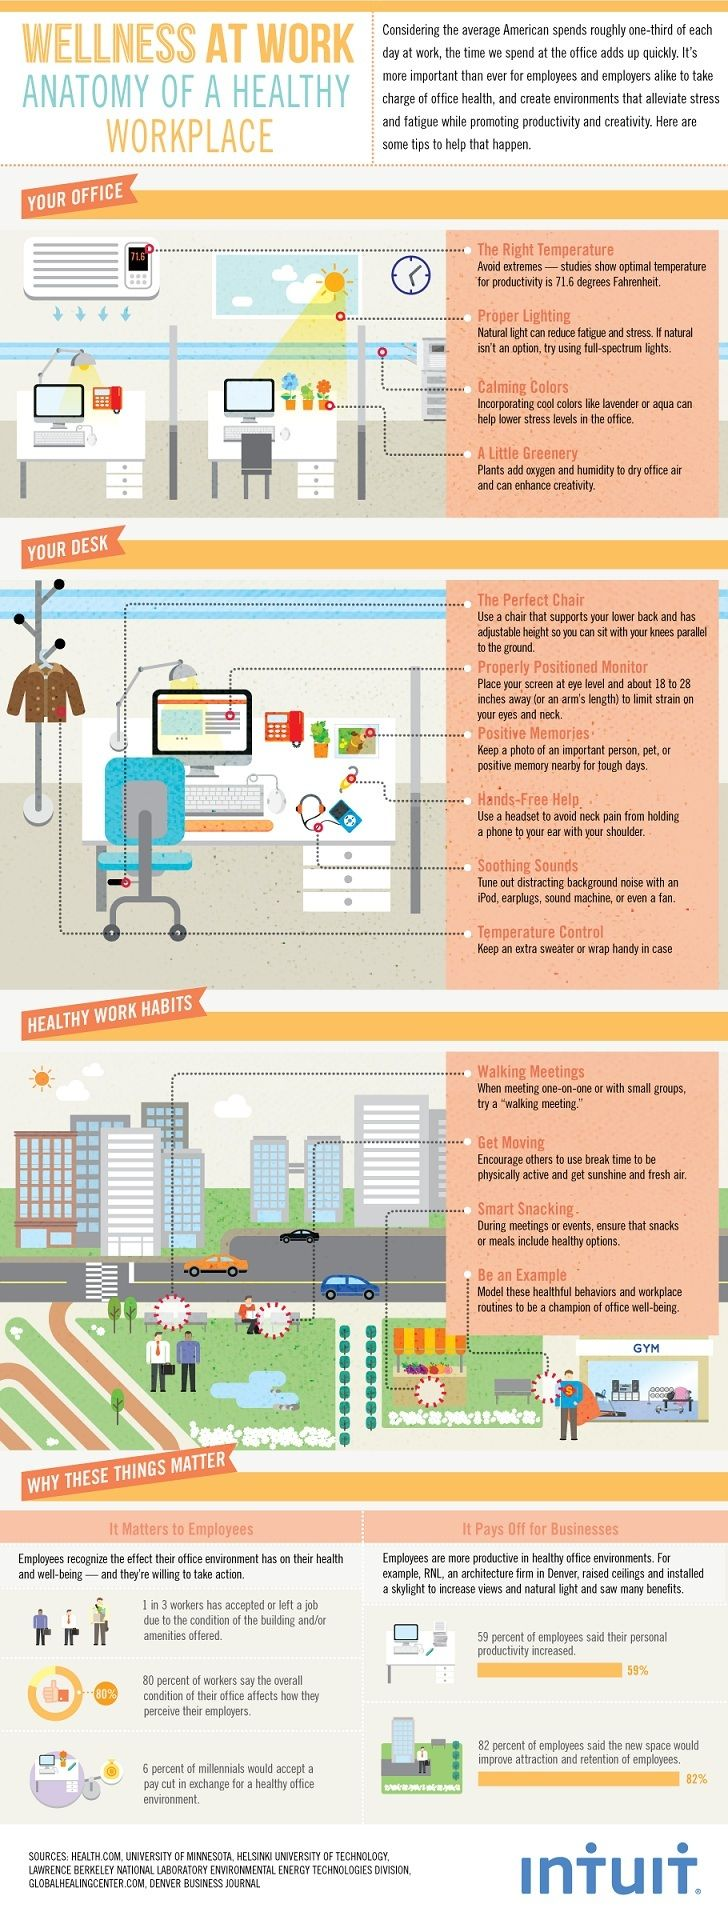 Anatomy of a Healthy Workplace (Infographic)